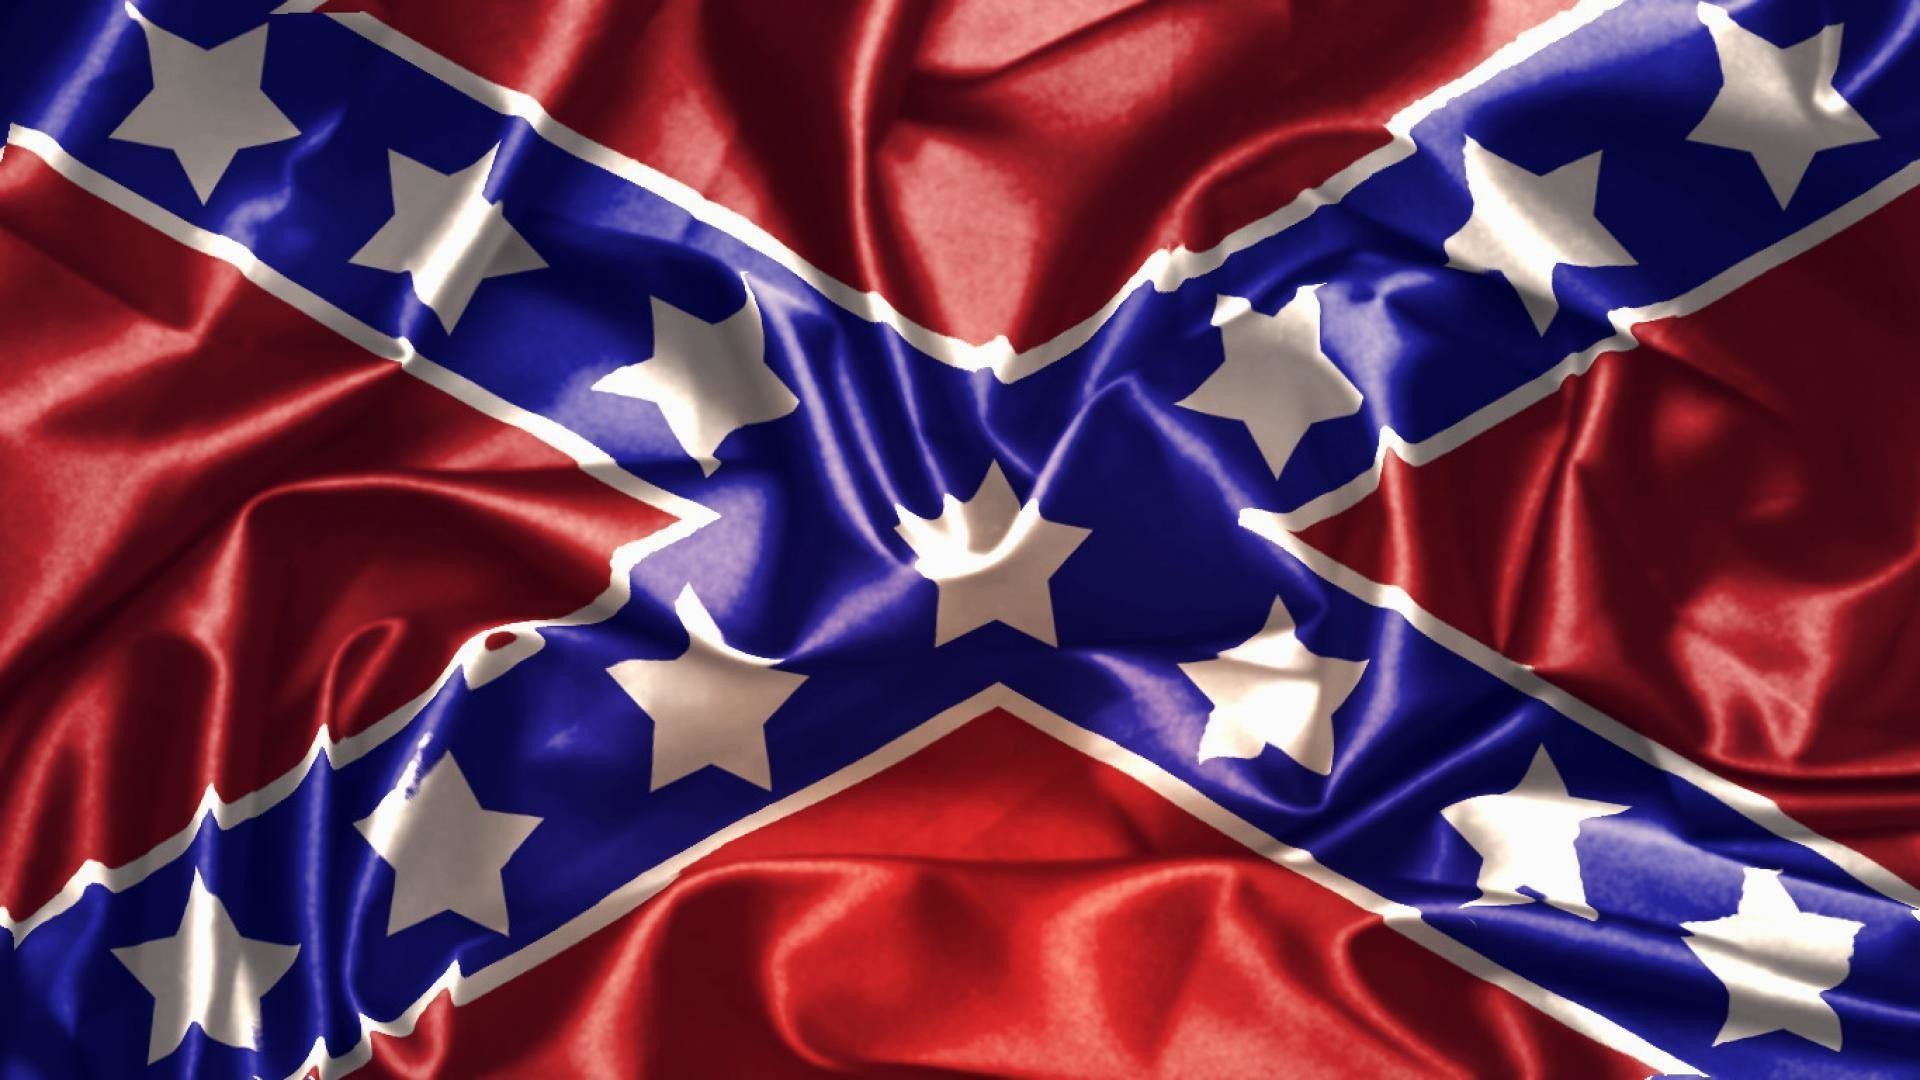 1920x1080 confederate-flag-pictures-desktop-1920-x-1080-kB-